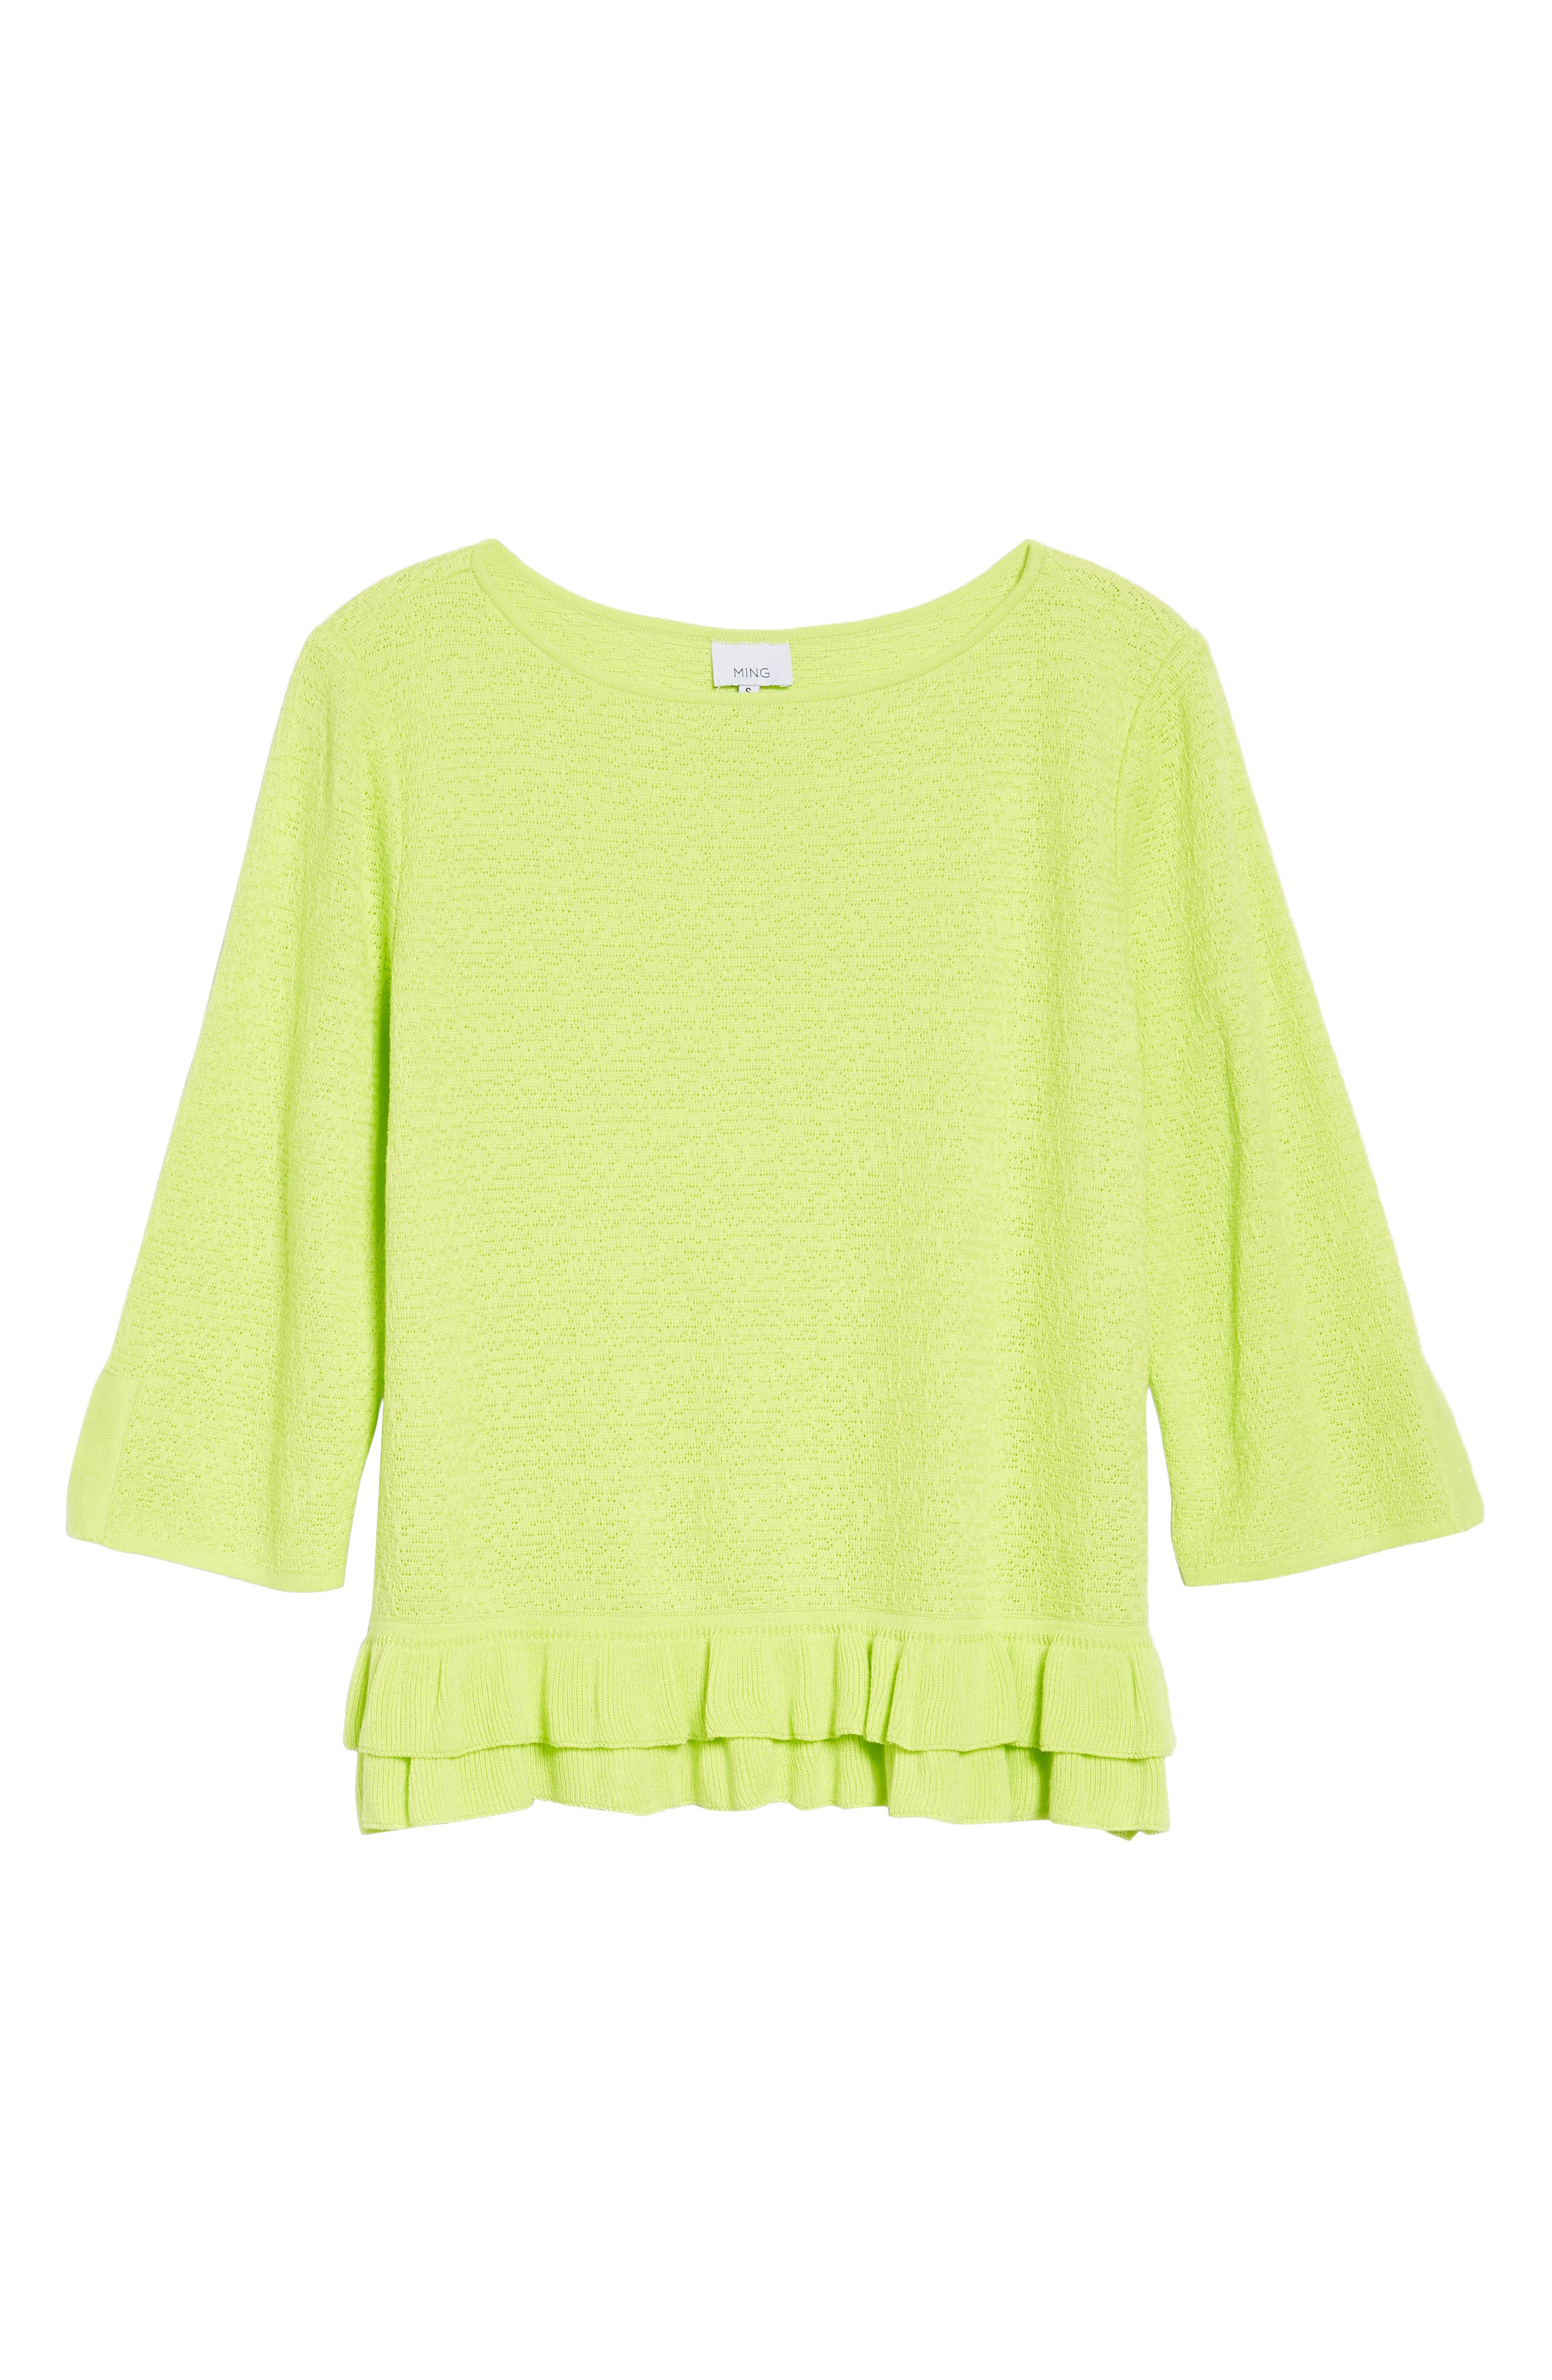 Button Detail Ruffle Sweater,                             Alternate thumbnail 6, color,                             321